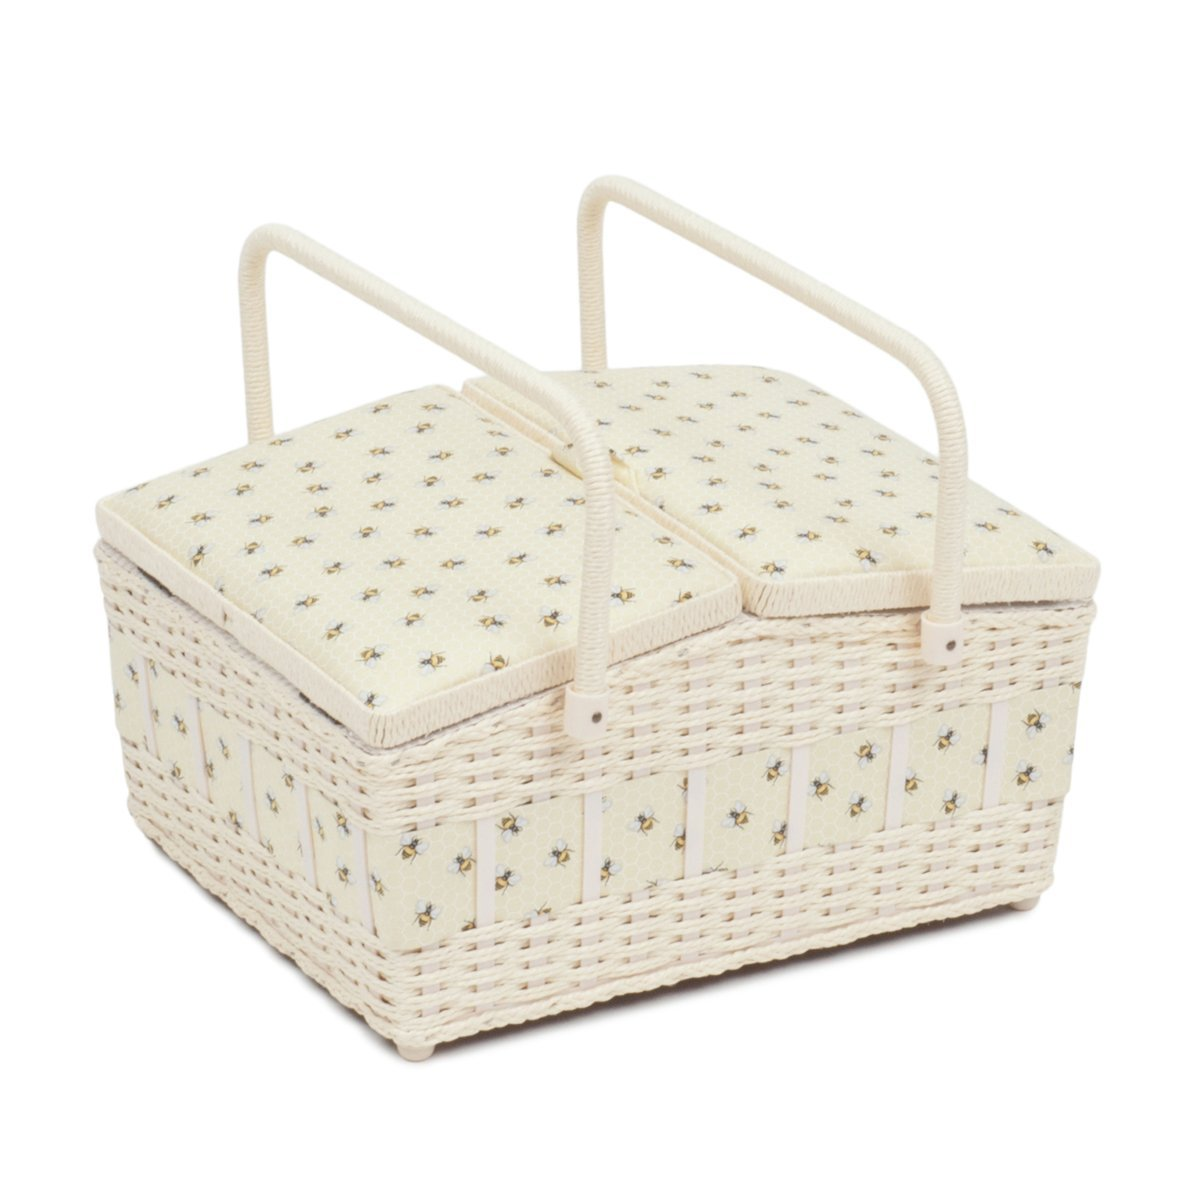 Hobby Gift Classic Twin Lid Wicker Sewing Box Honeycomb by Hobby Gift